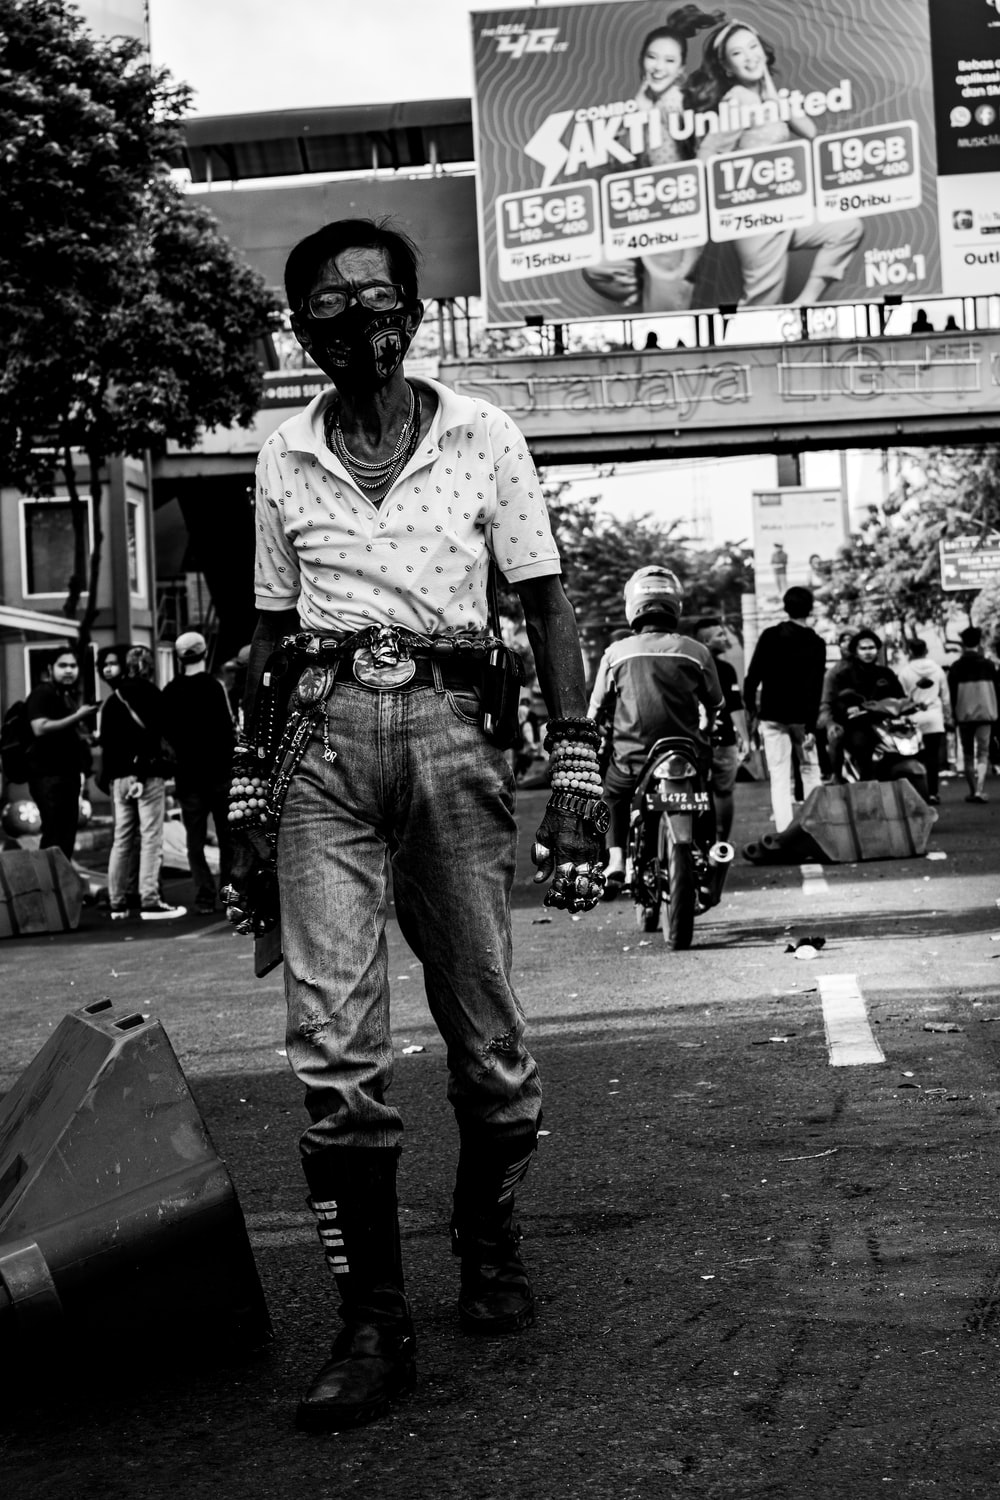 man in white t-shirt and blue denim jeans standing on street